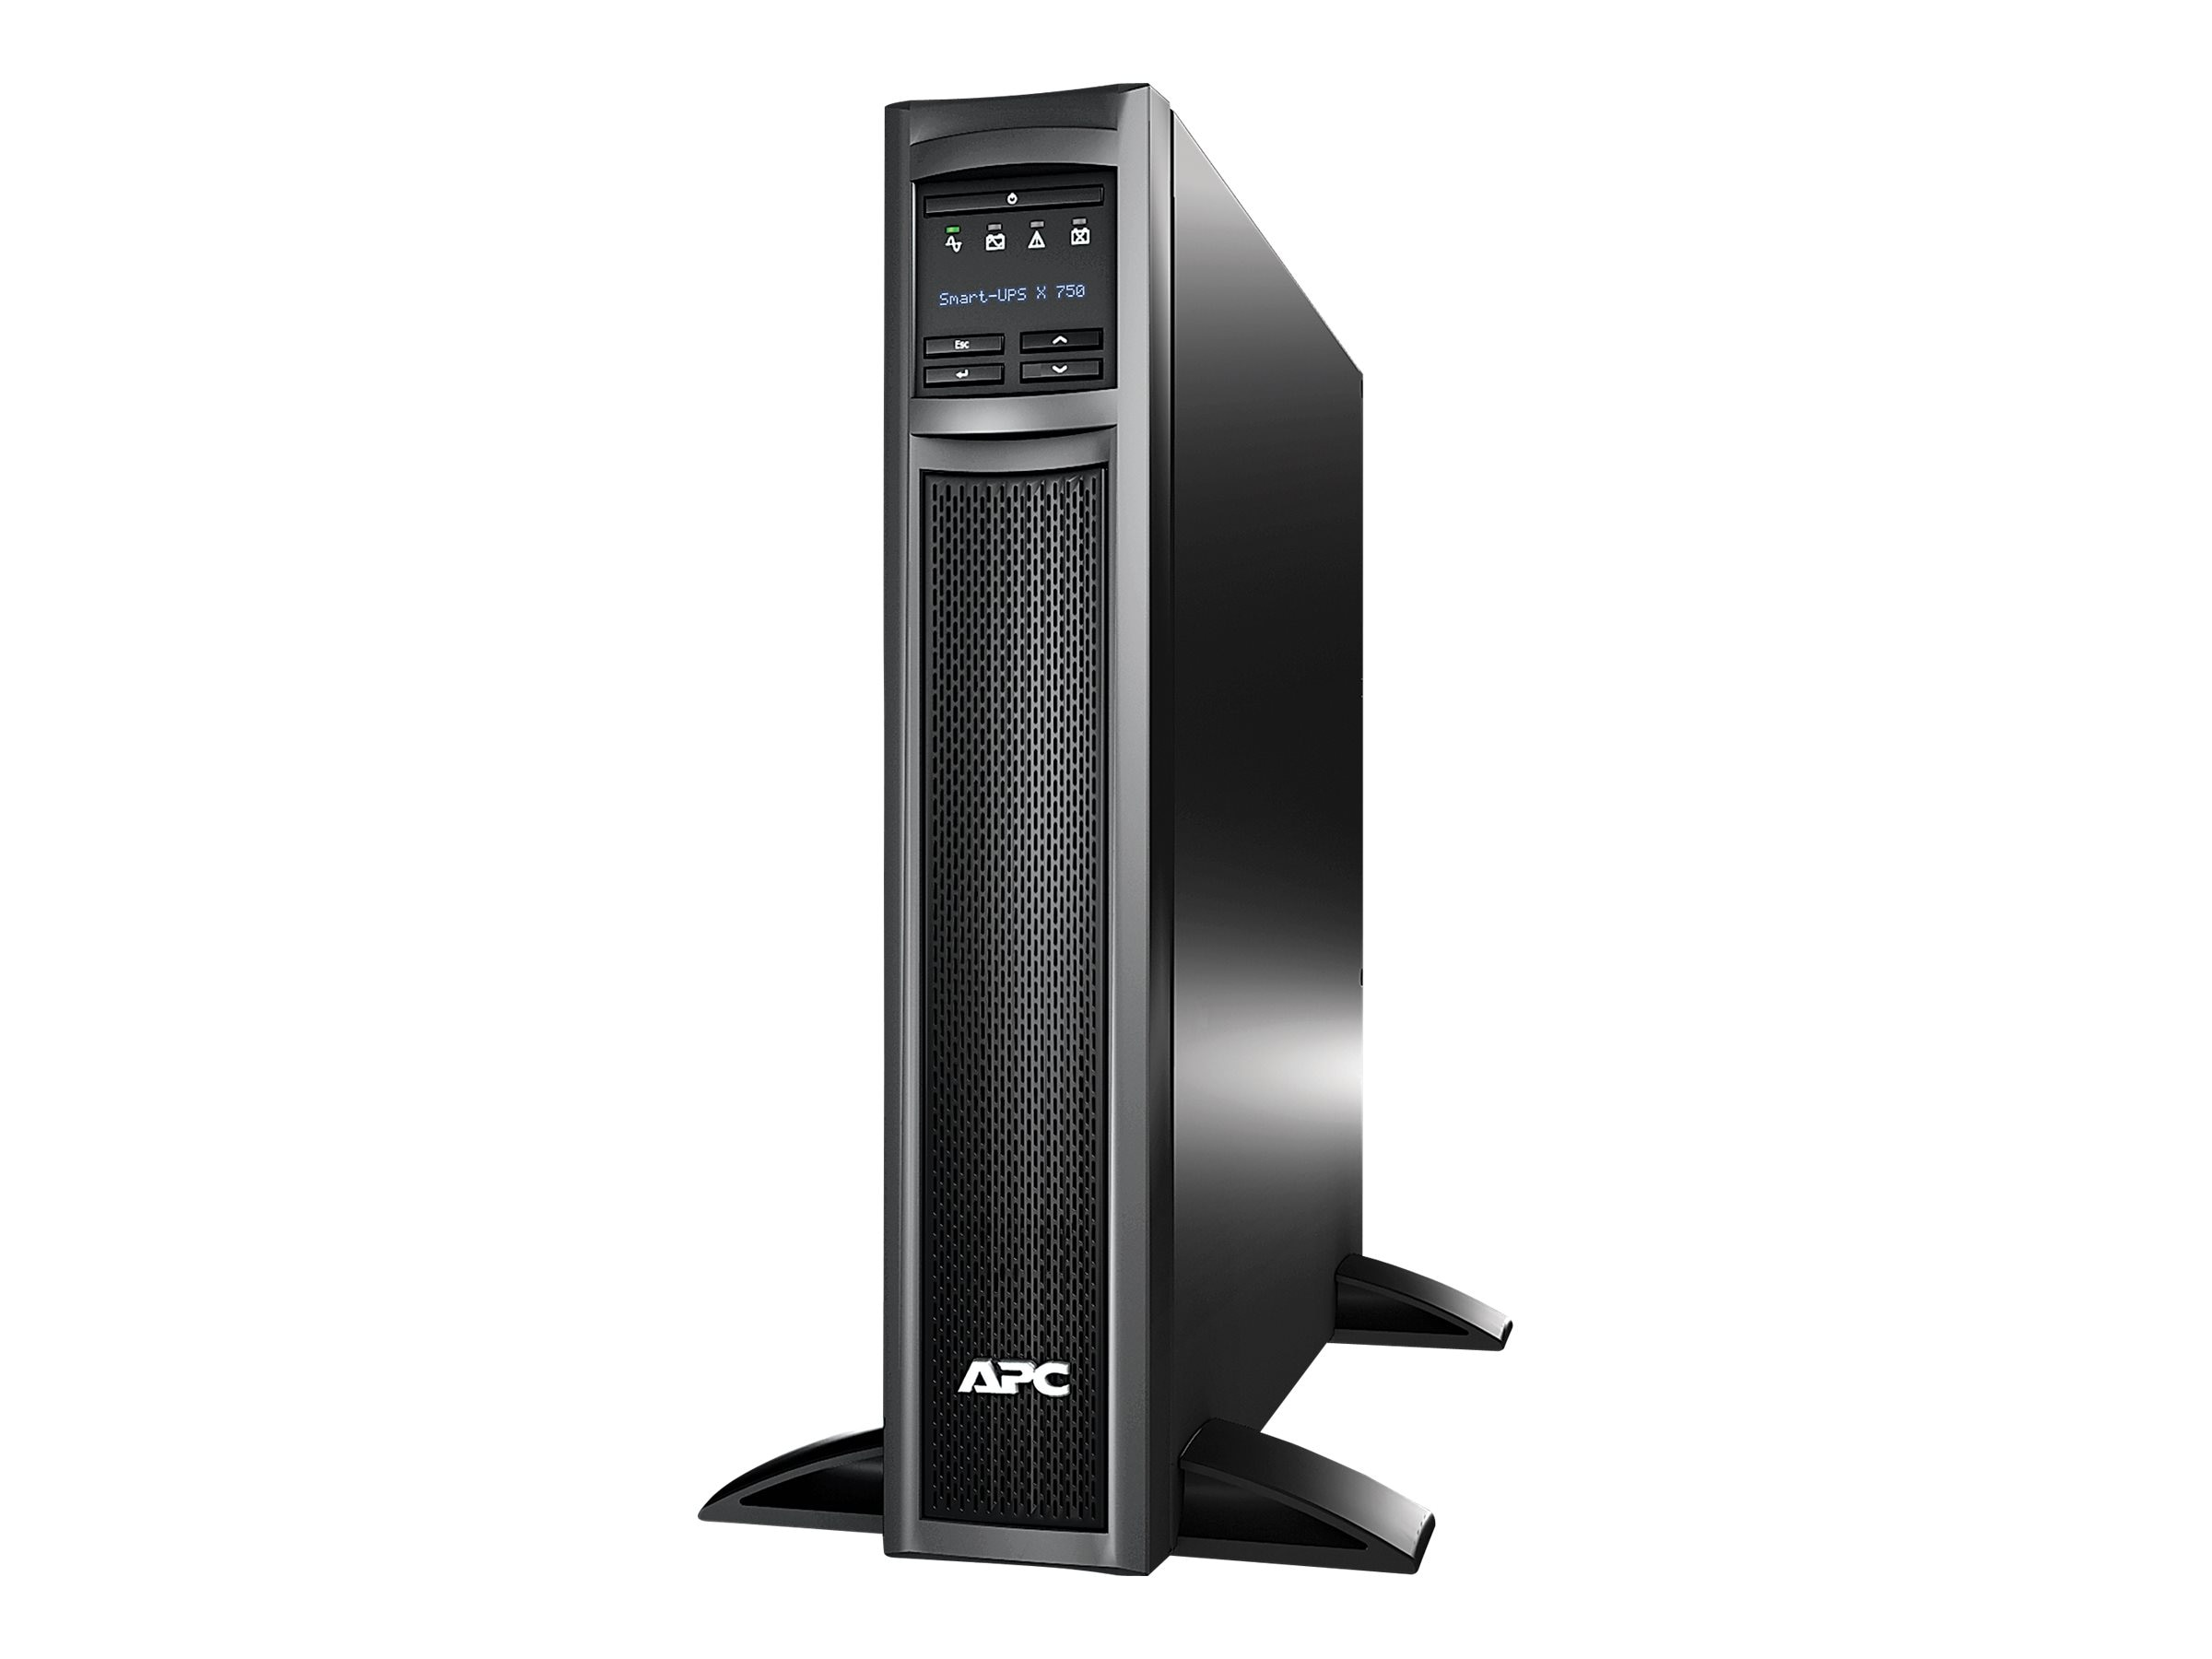 APC Smart-UPS X750VA 600W Rack Tower LCD 120V UPS (8) Outlets